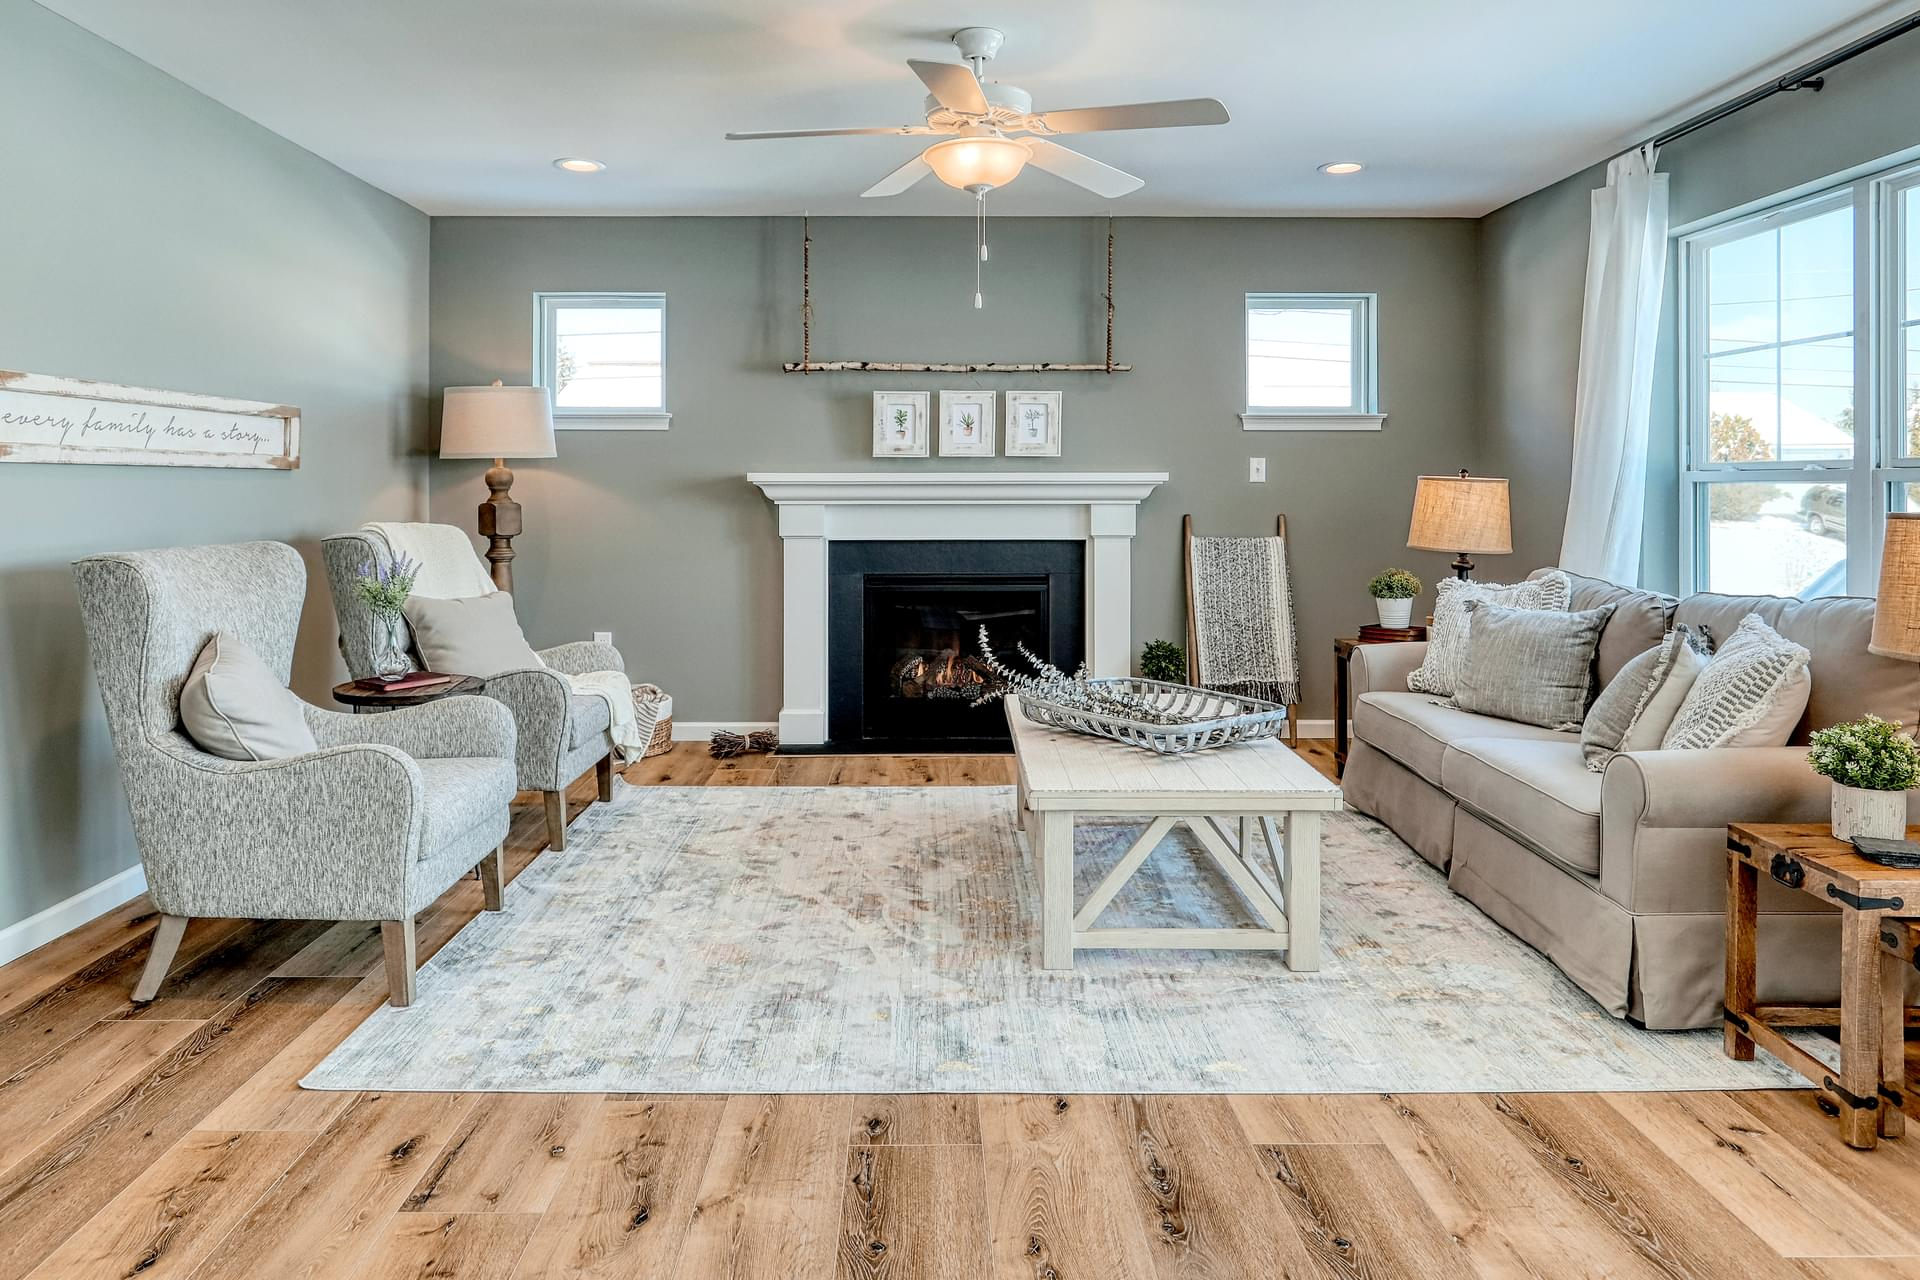 1,909sf New Home in Mohnton, PA